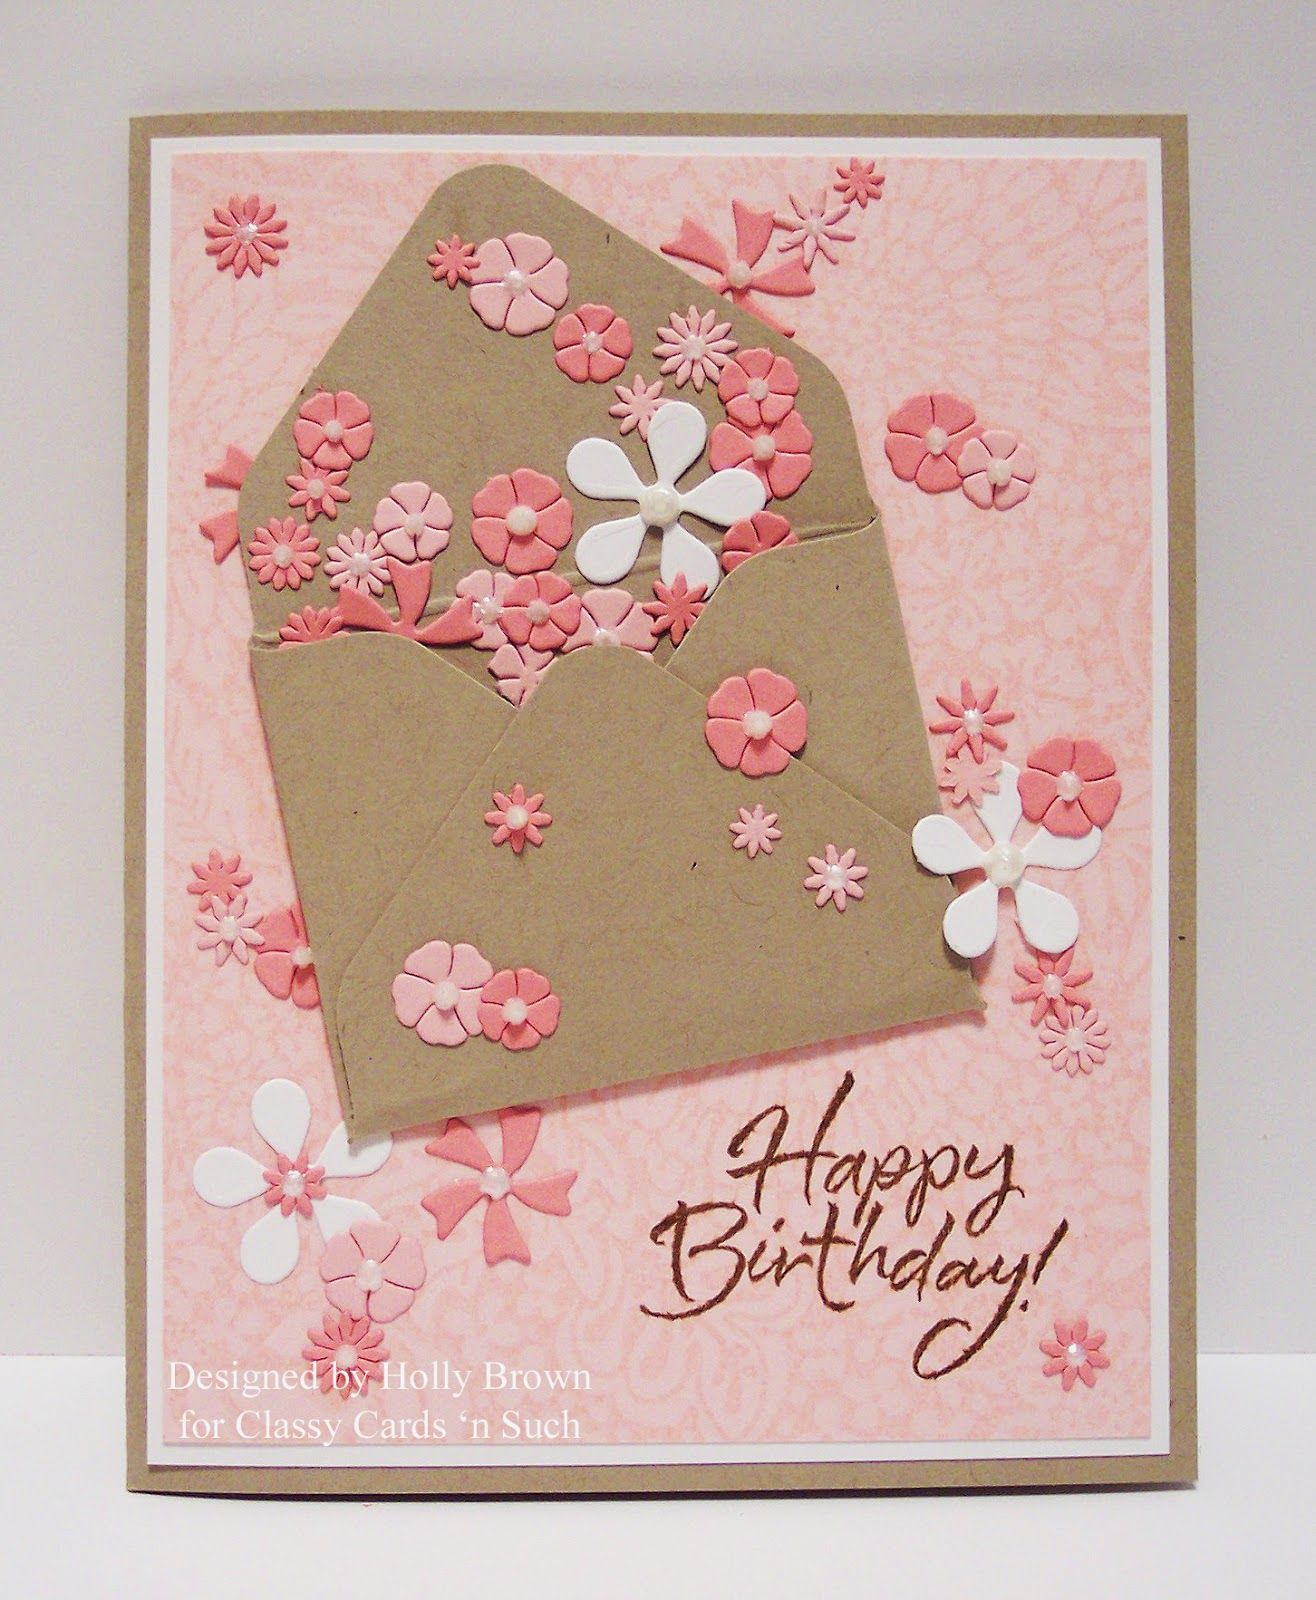 Hollys envelope of flowers what a cute way to send birthday hollys envelope of flowers what a cute way to send birthday greetings to someone special you can find the details here at m4hsunfo